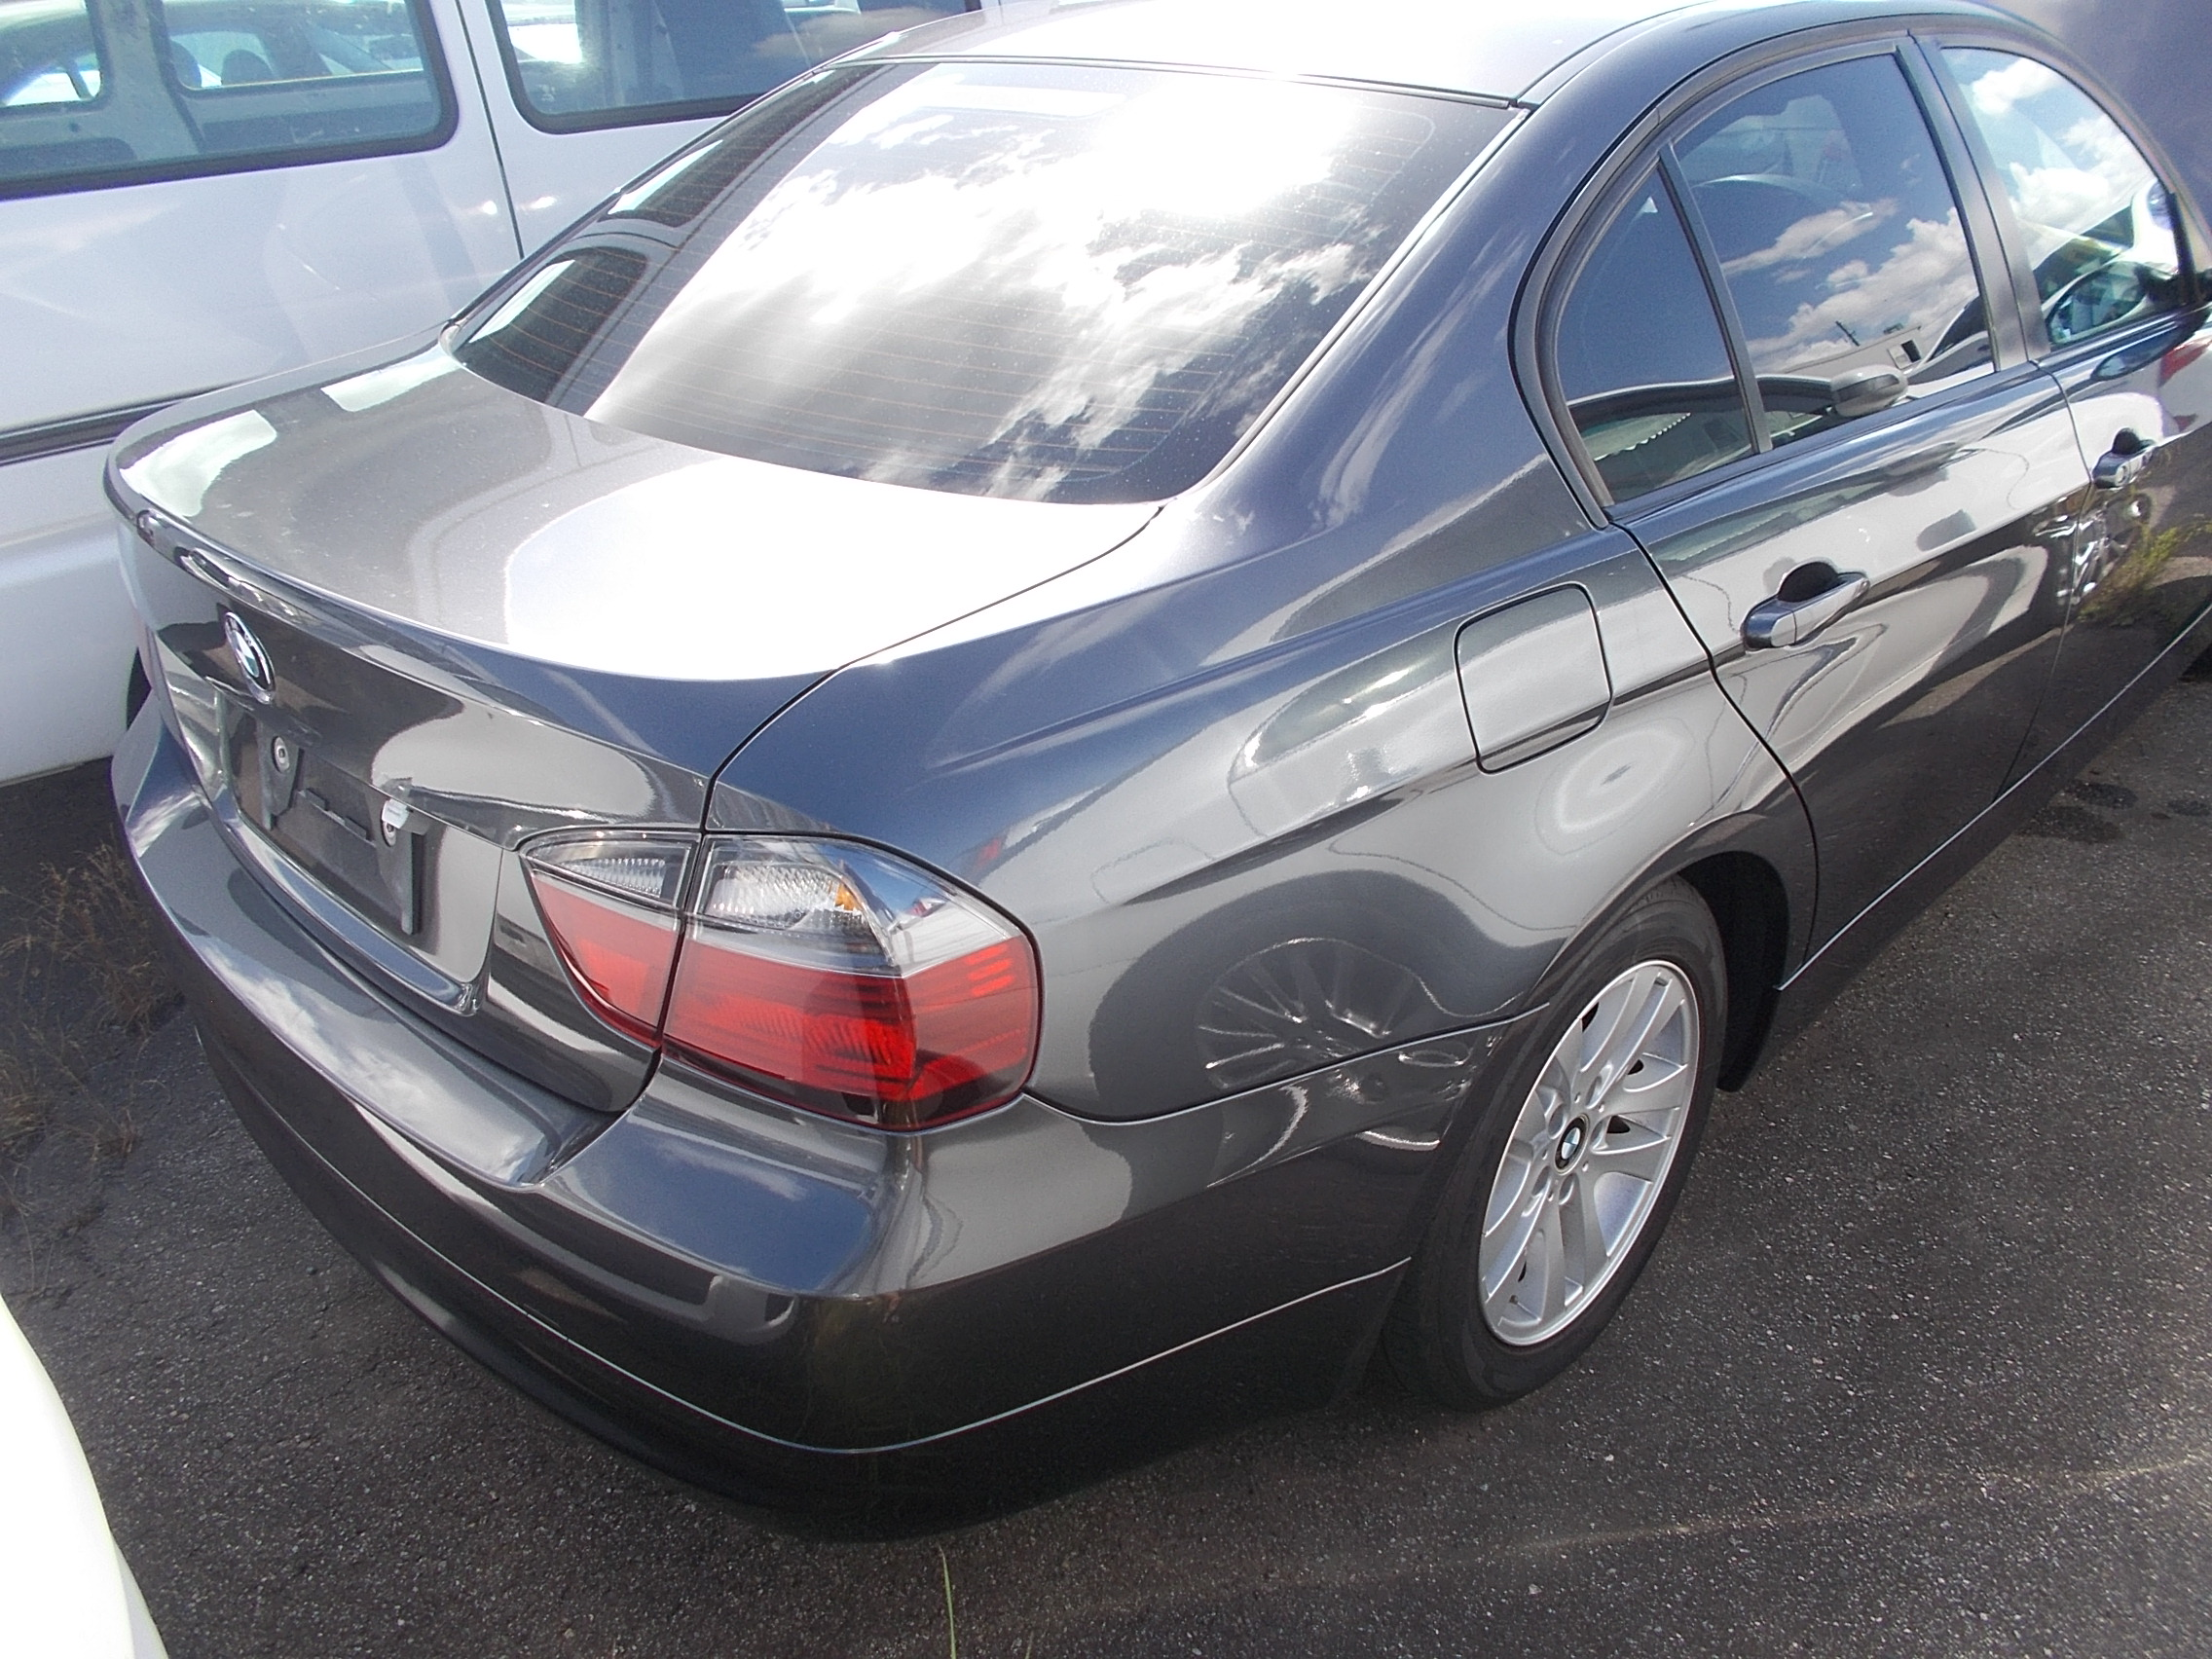 BMW 3 SERIES 2006 grey VA20